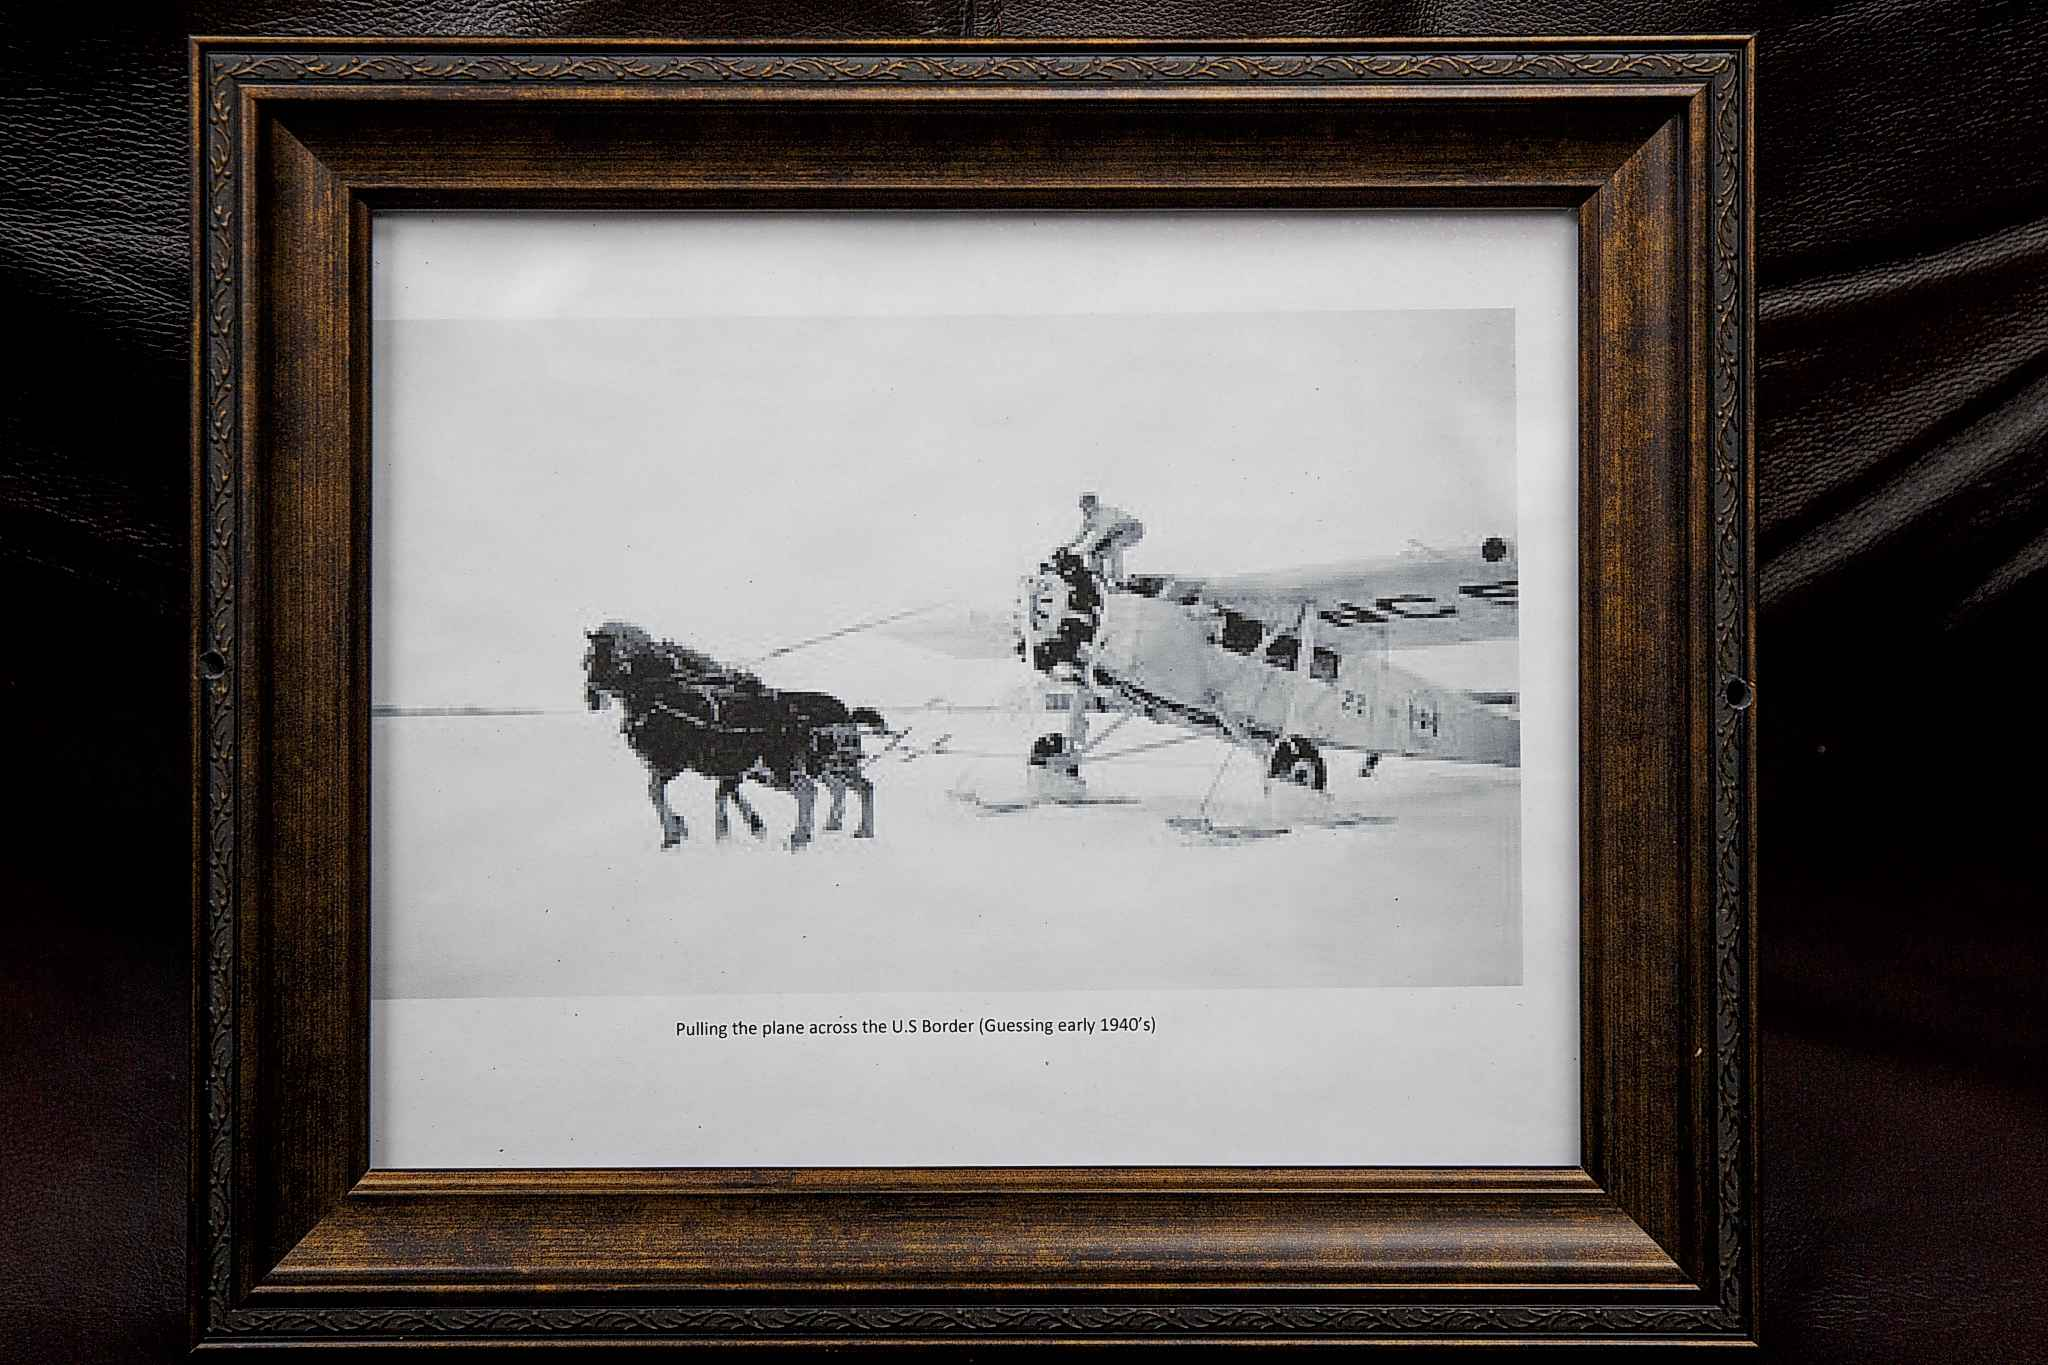 Wilwand has photo of a plane being pulled by horses in his office. (Mike Deal / Winnipeg Free Press)